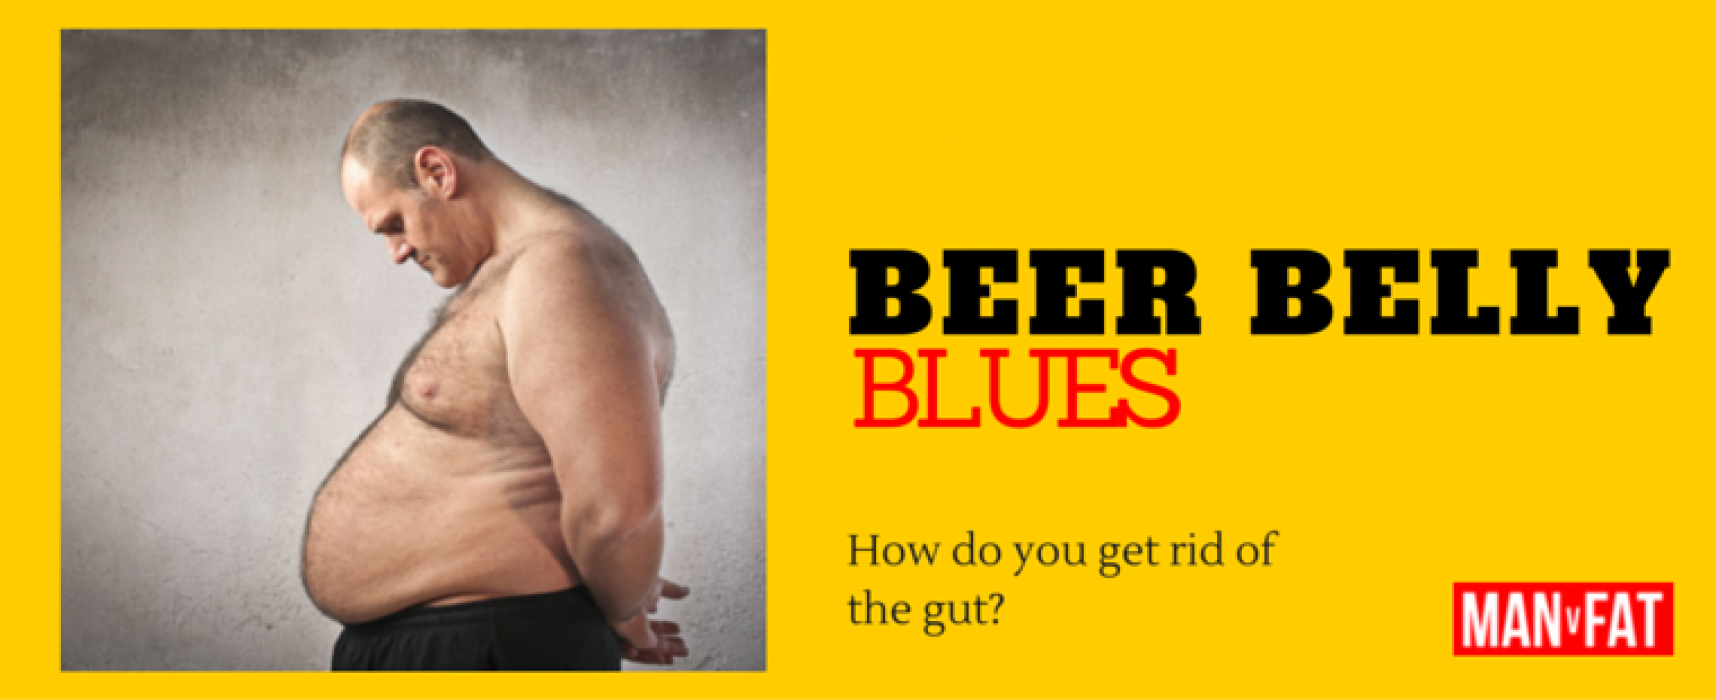 How Do You Beat The Beer Belly?